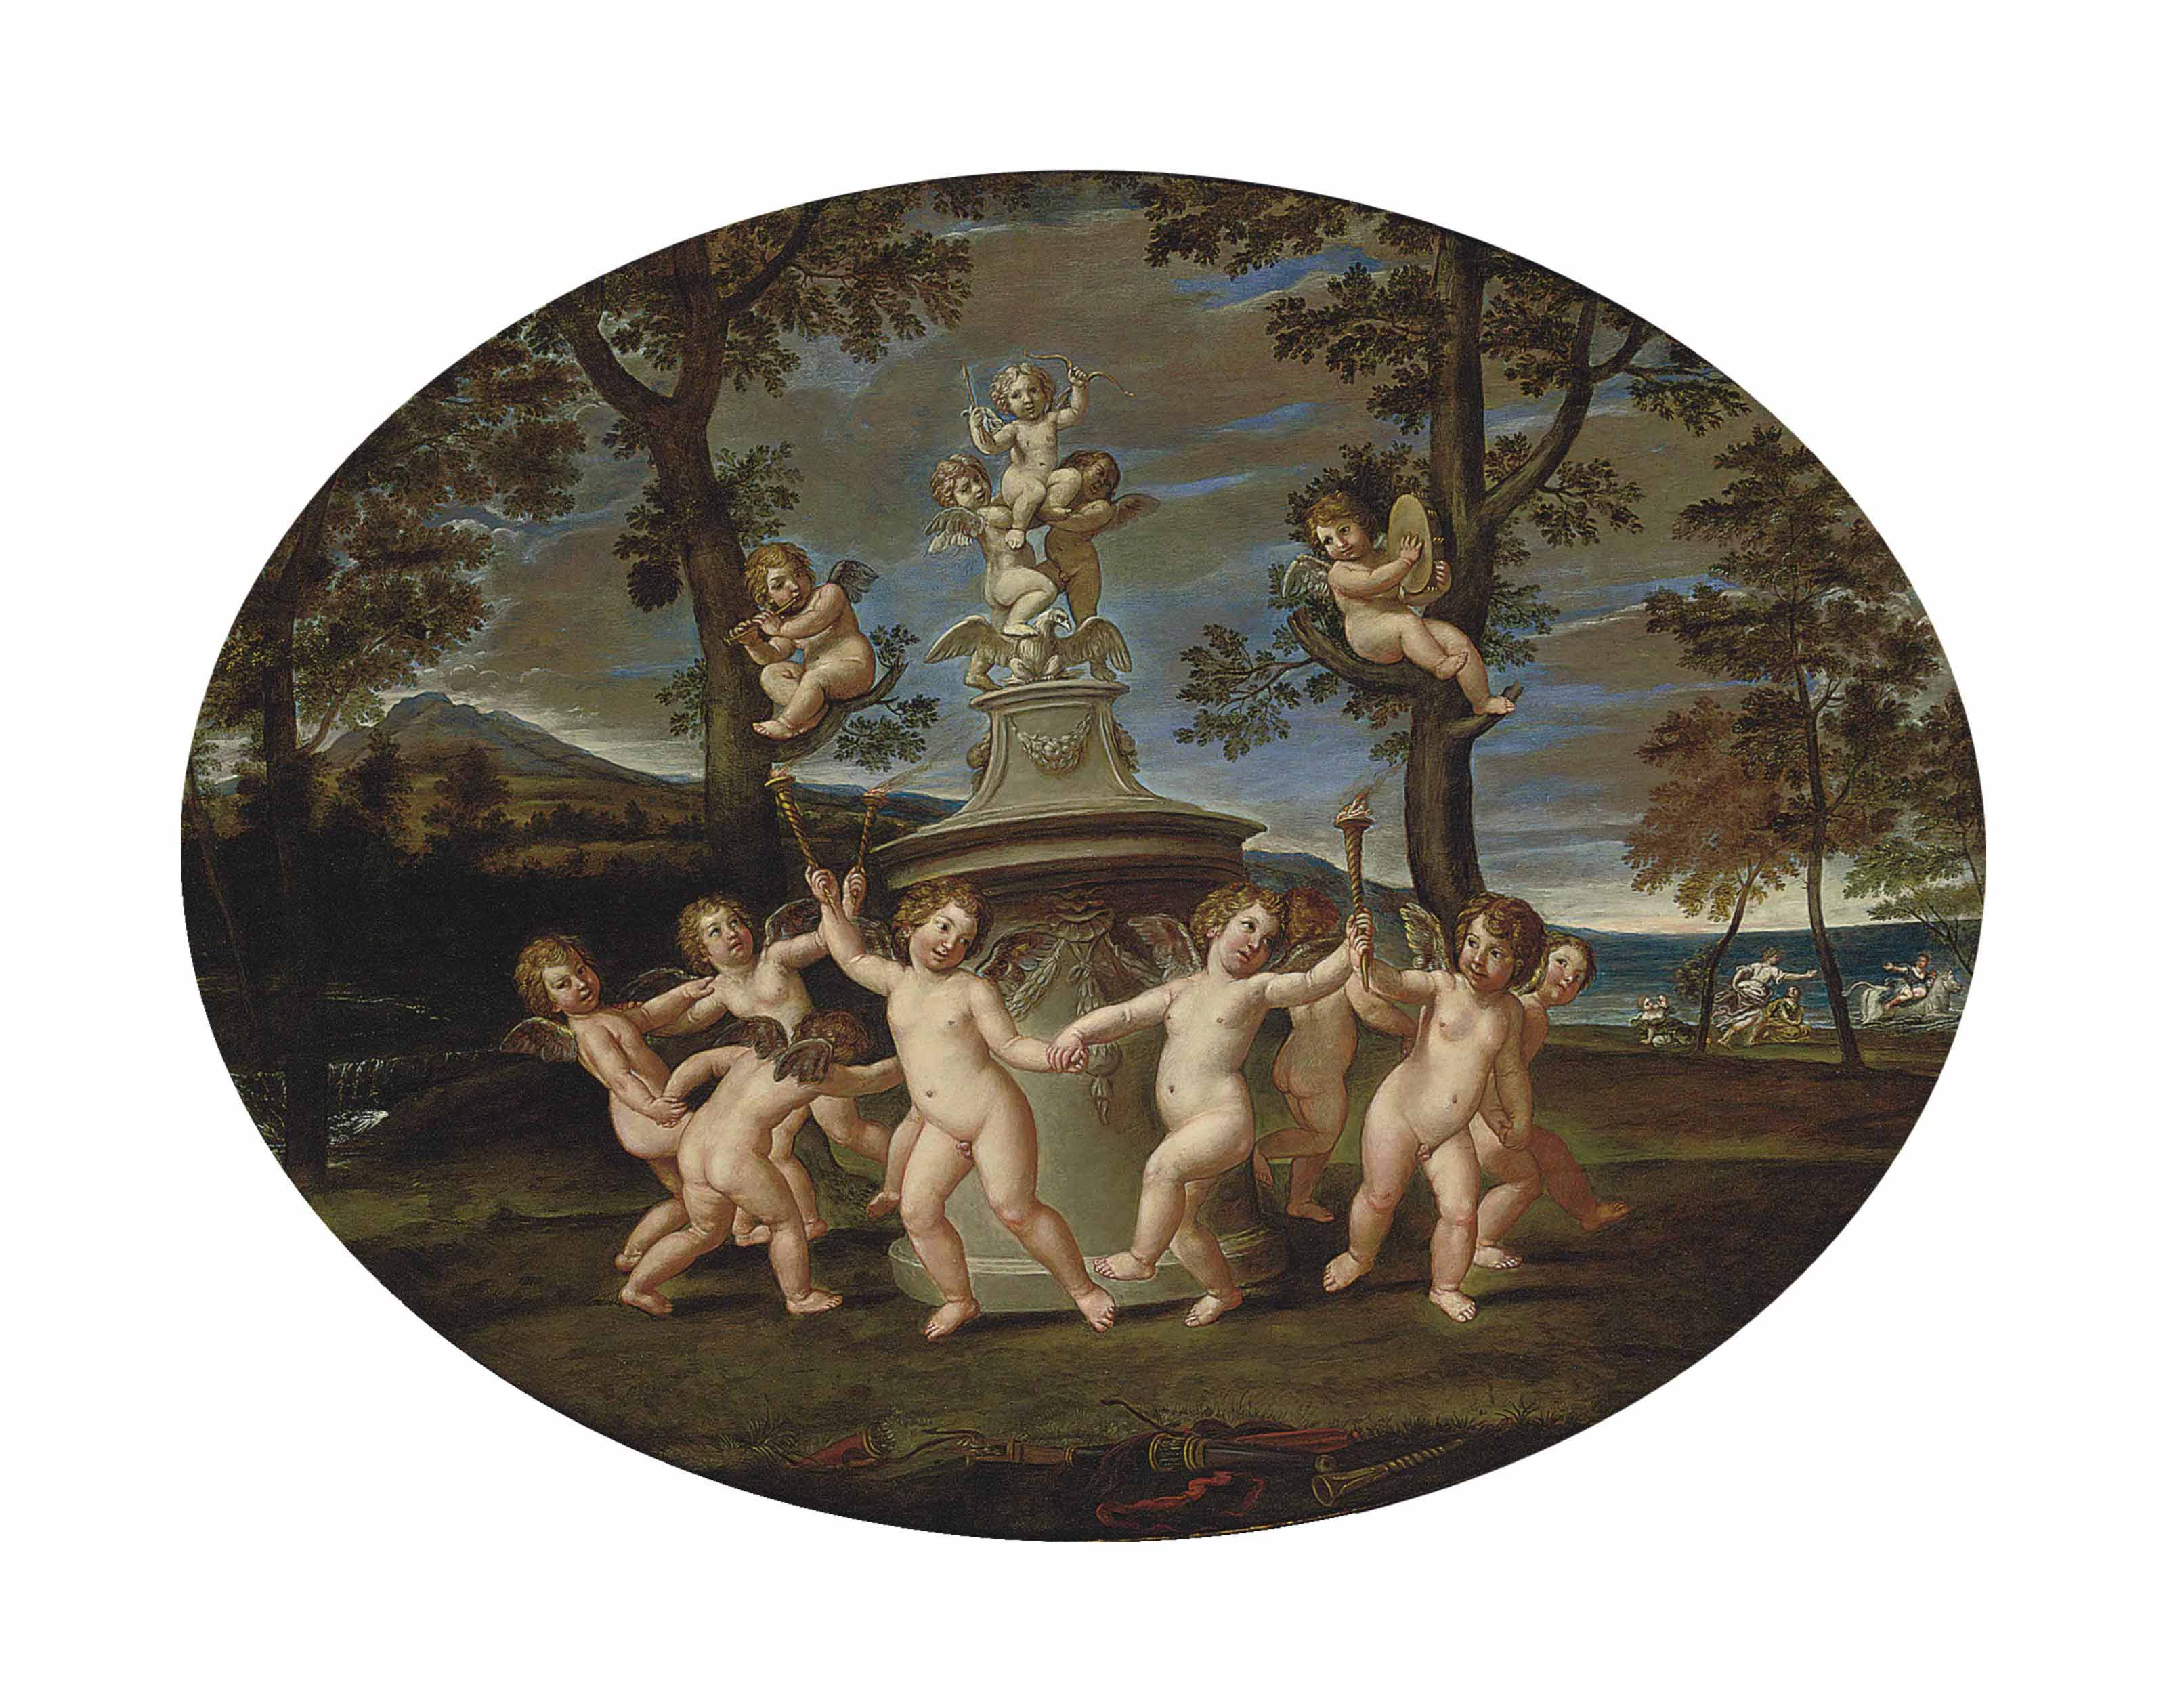 The Dance of the Cupids